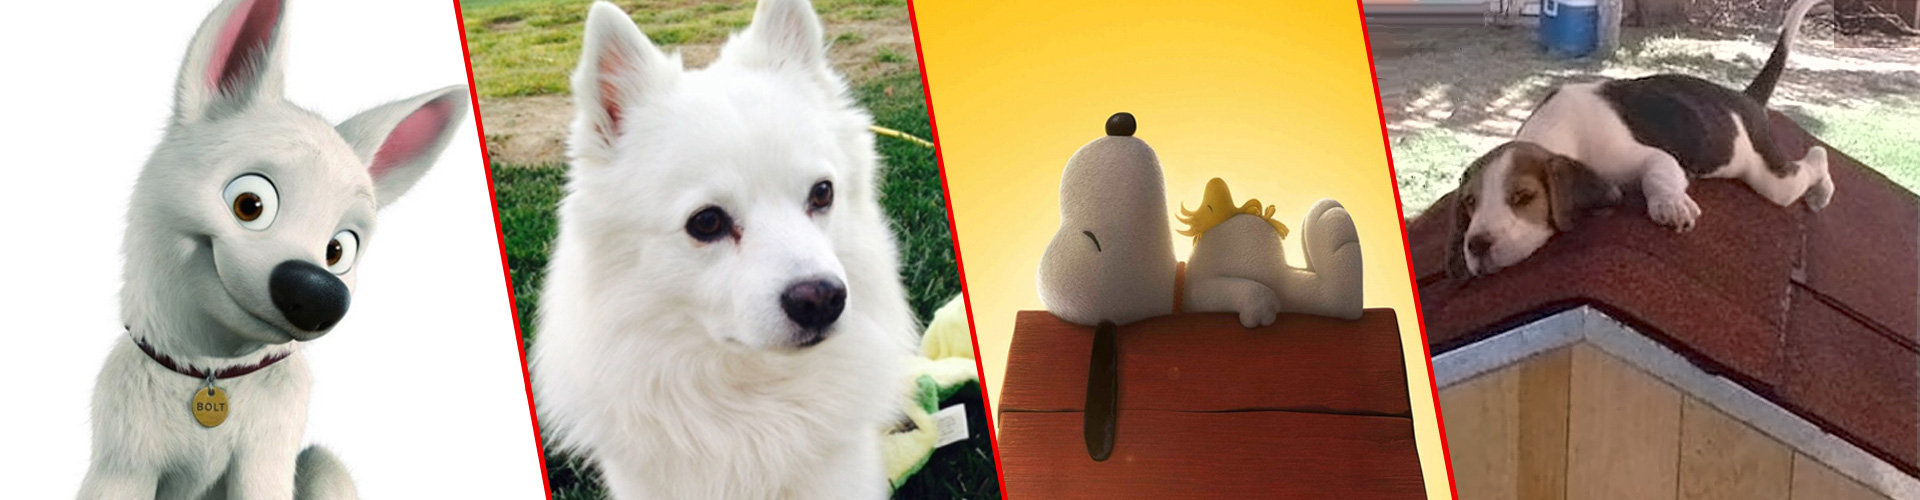 Cartoon dogs & their real-life counterparts